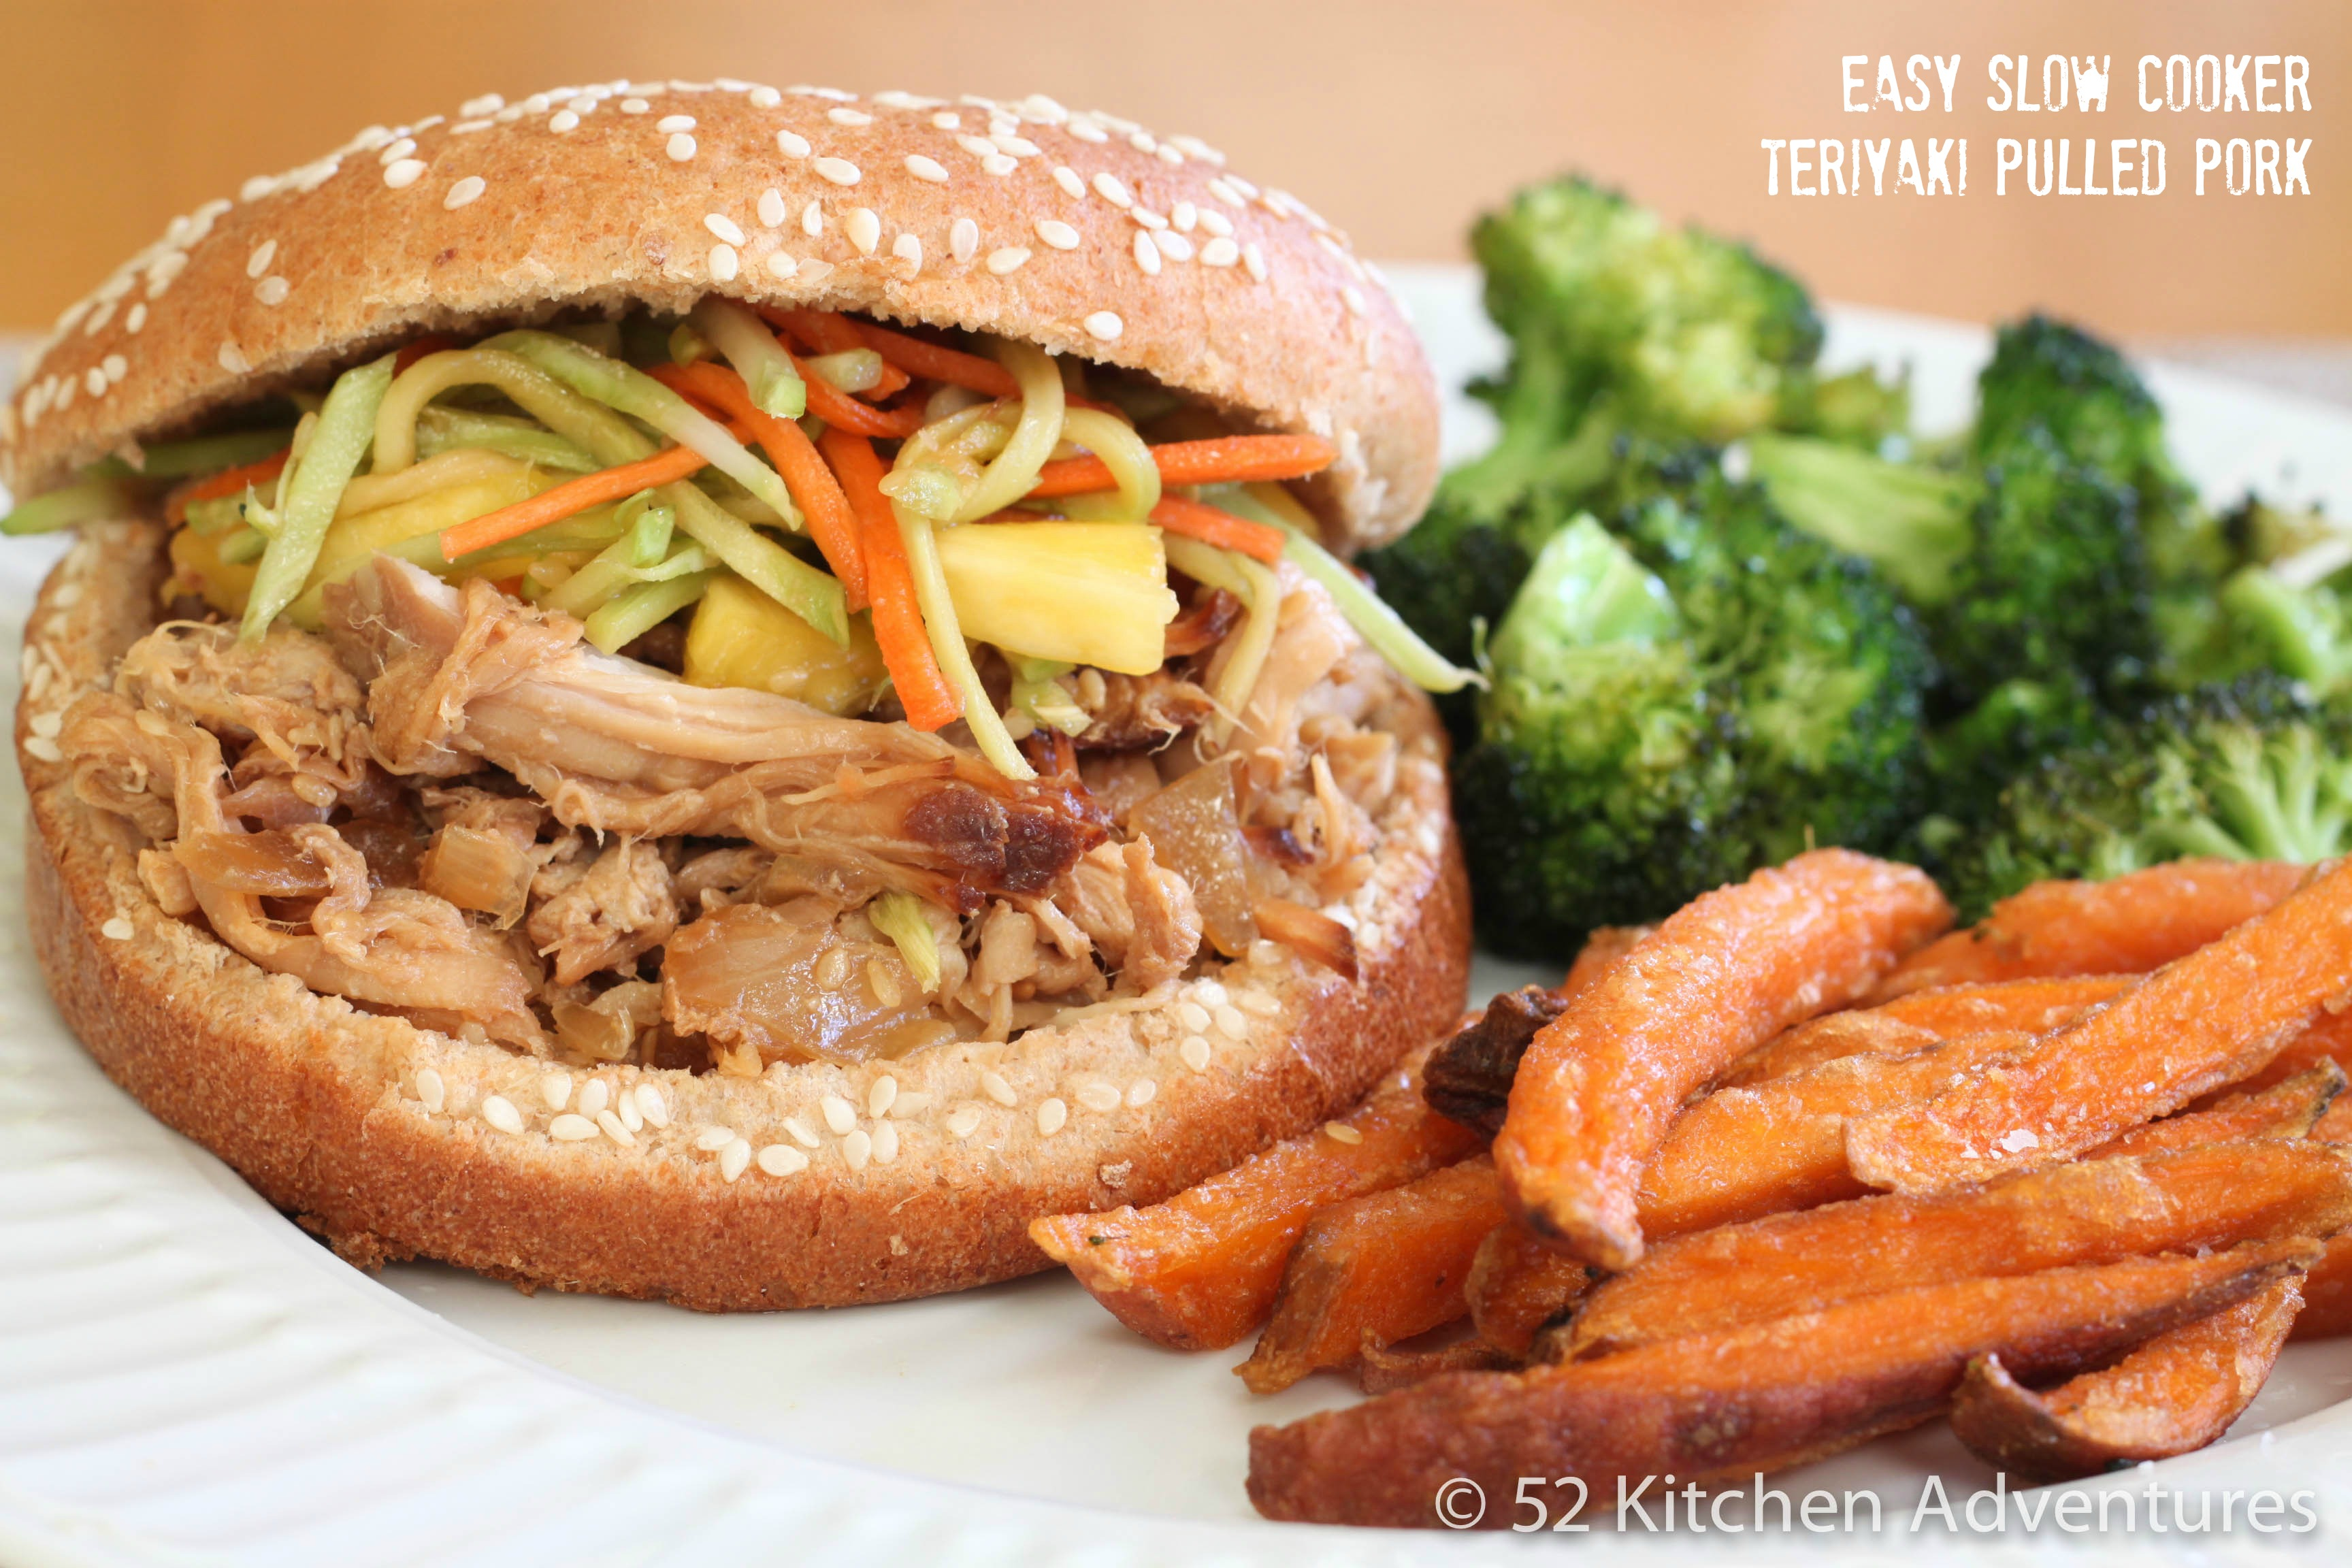 Easy Slow Cooker Teriyaki Pulled Pork